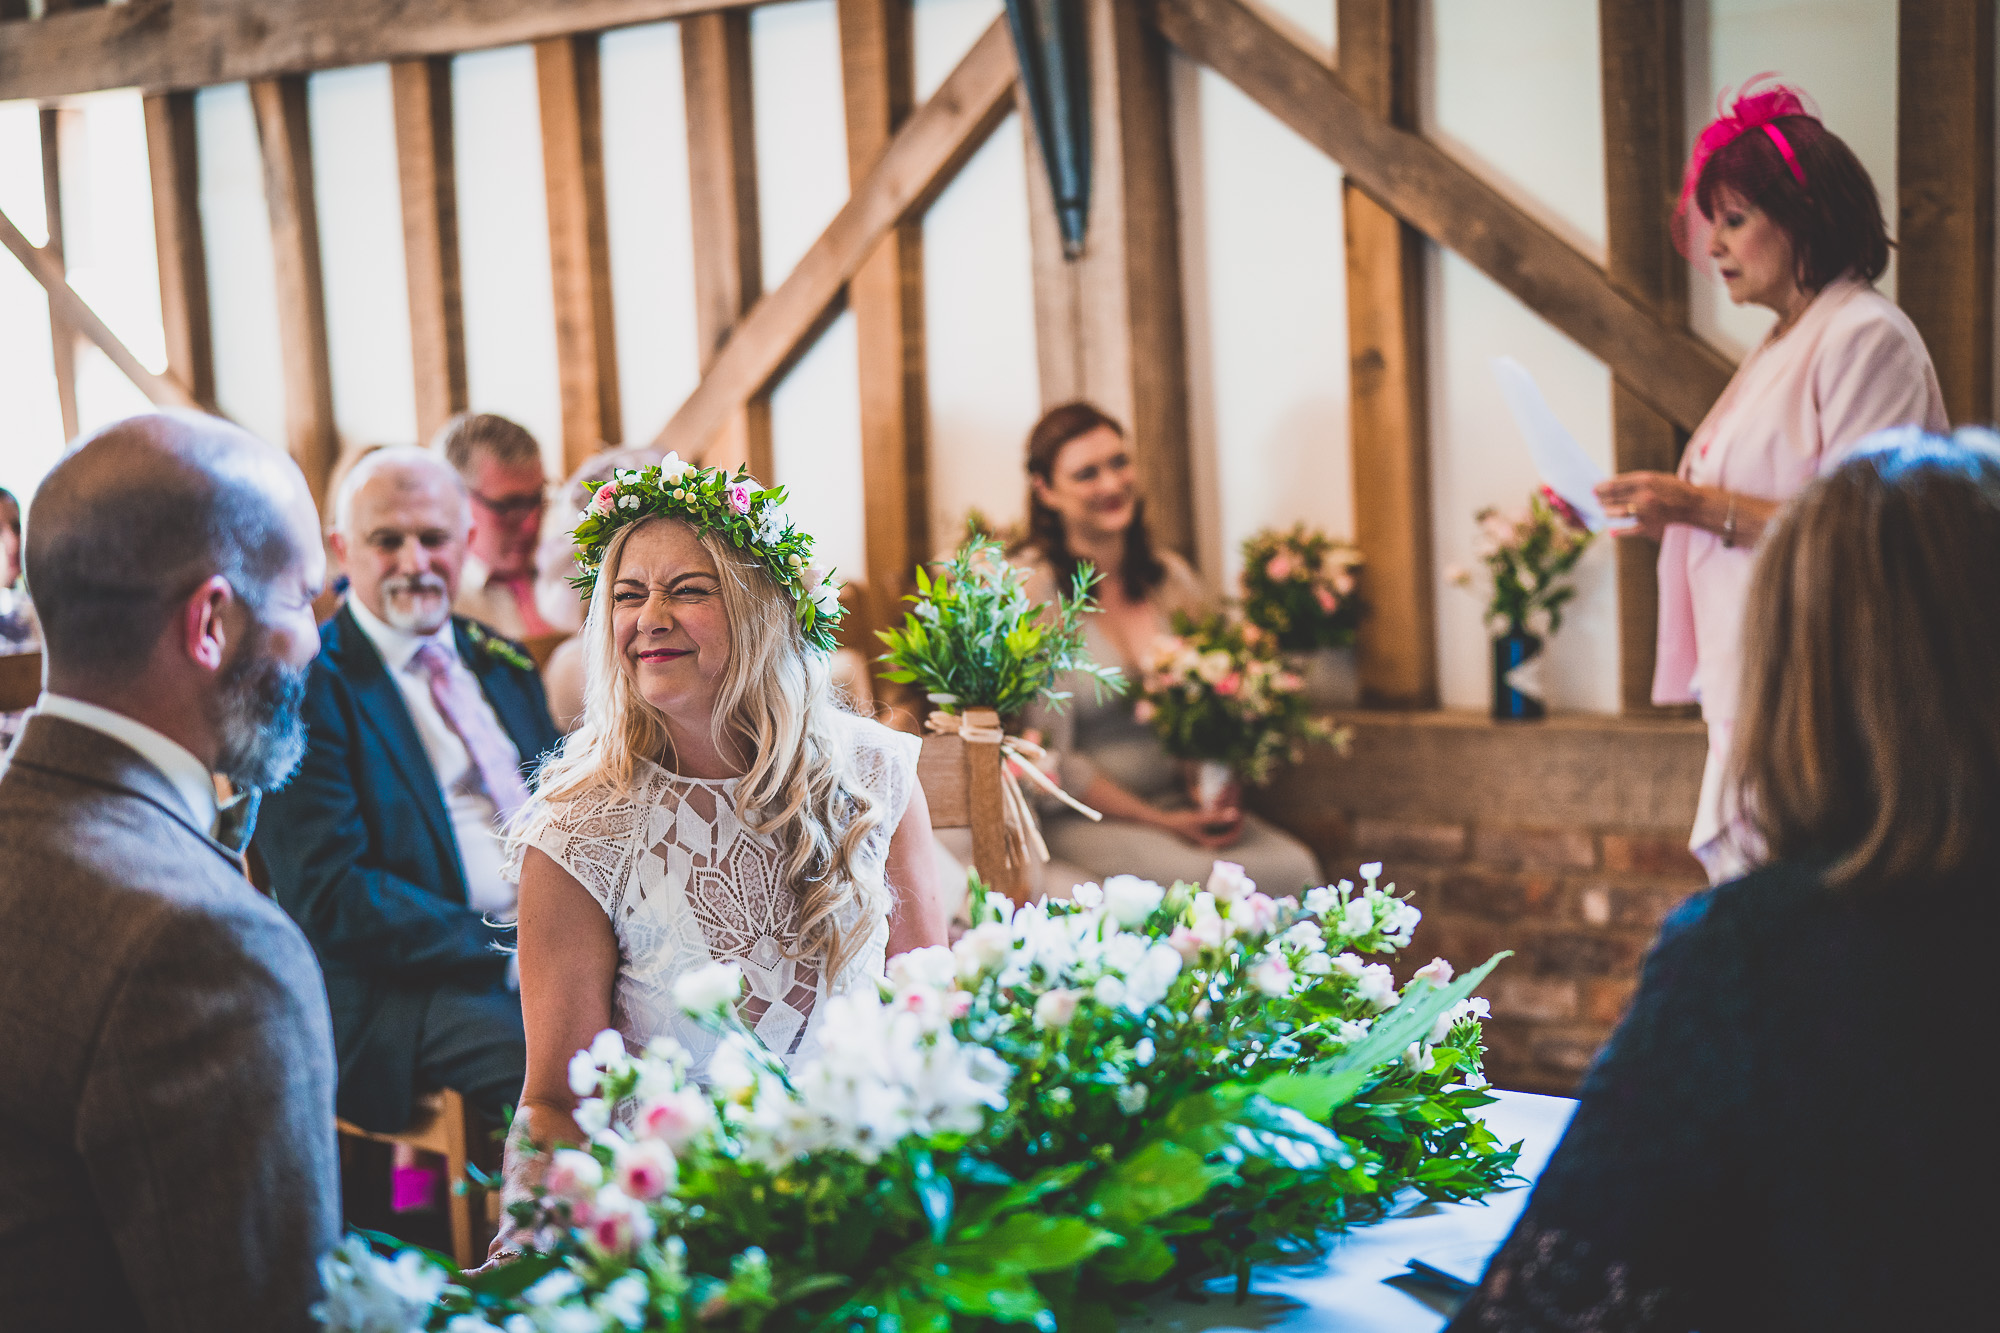 Gate Street Barn Wedding Photography | Nikki & Rich Gate Street Barn Wedding Photyography 012